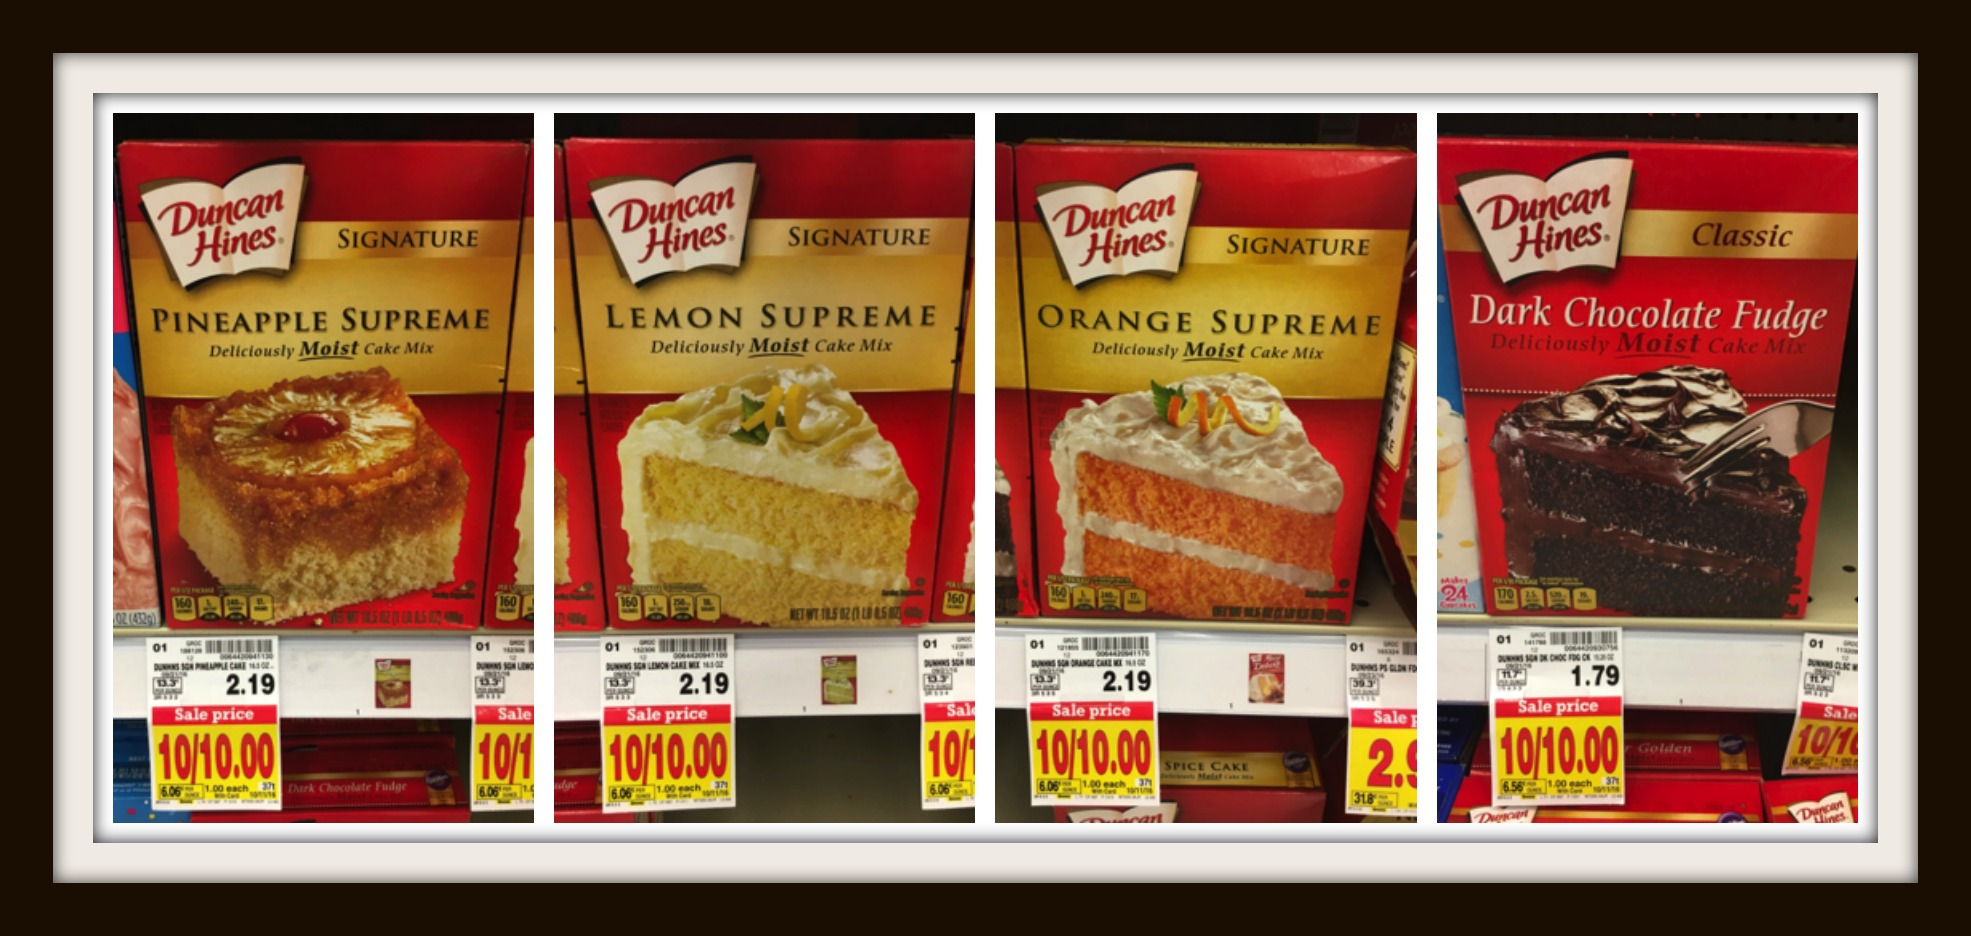 graphic about Duncan Hines Coupons Printable identify Duncan Hines Cake Mixes Merely $1.00 at Kroger!! Kroger Krazy